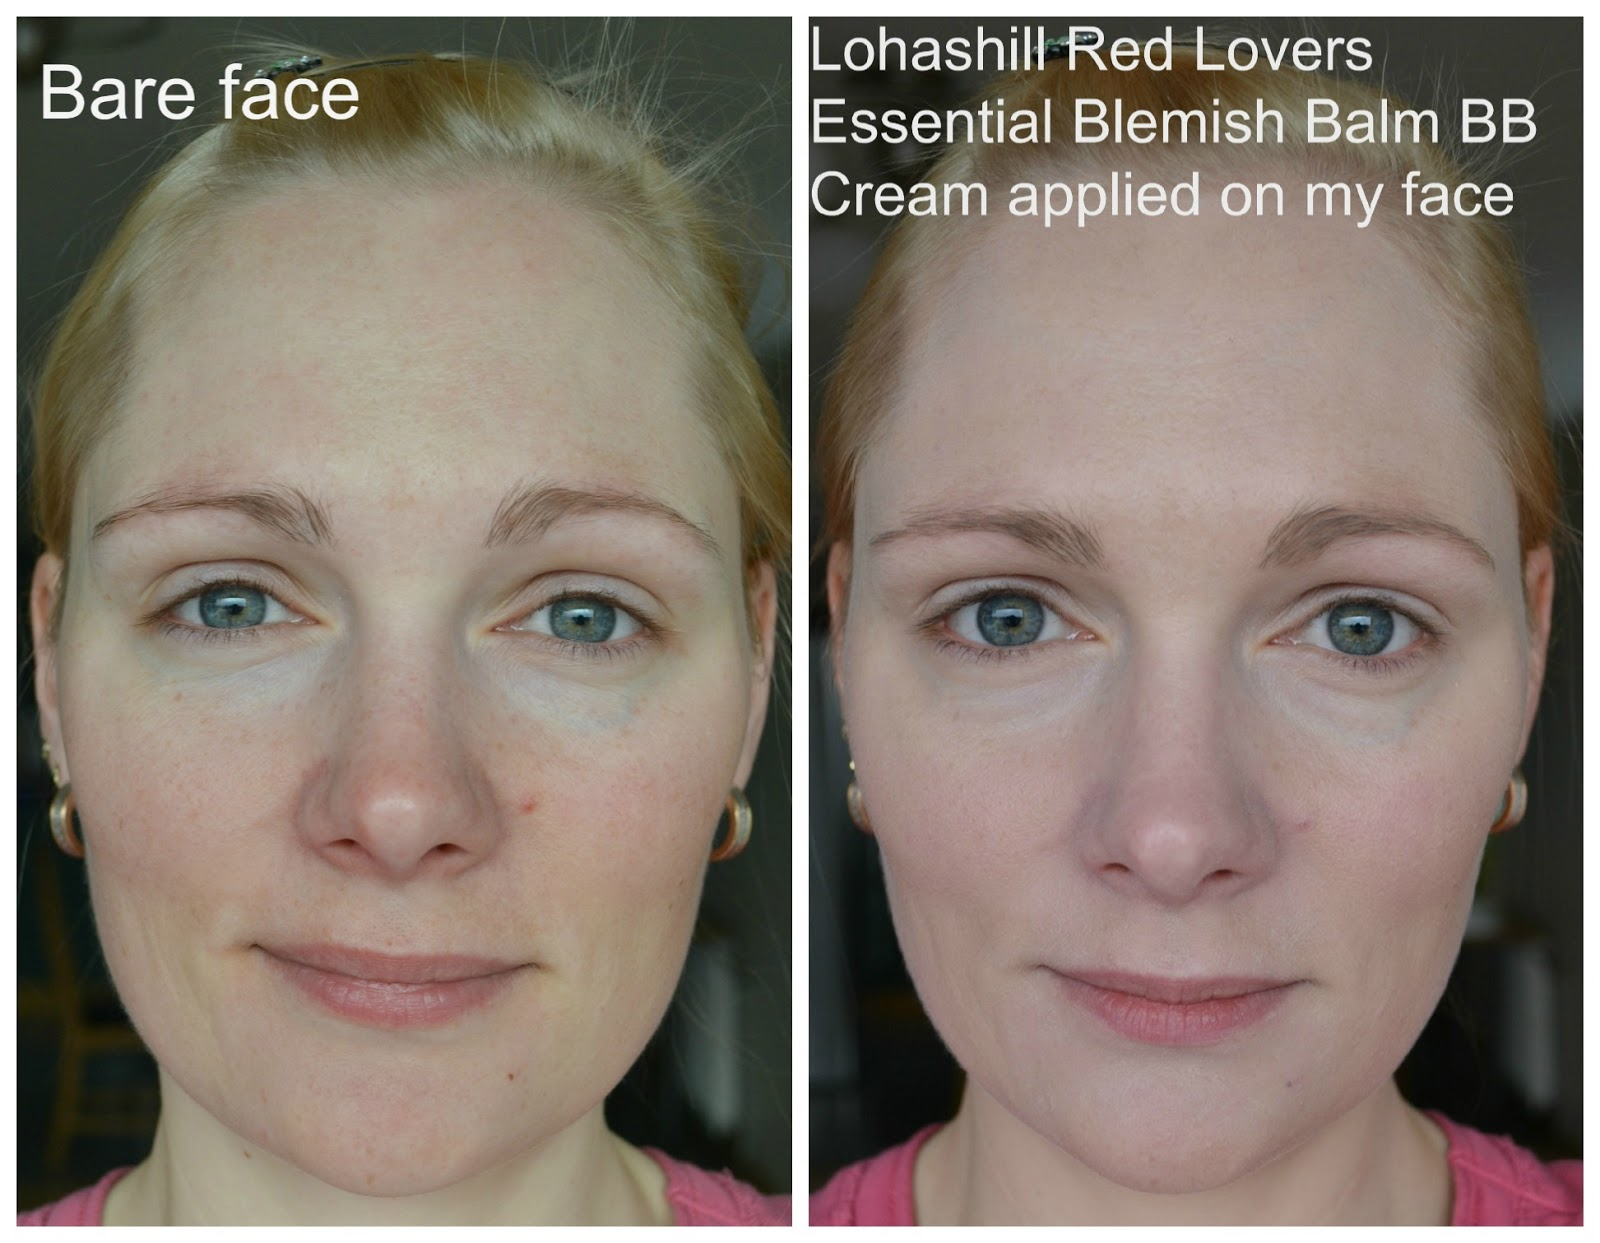 Lohashill Red Lovers Essential Blemish Balm BB Cream before after